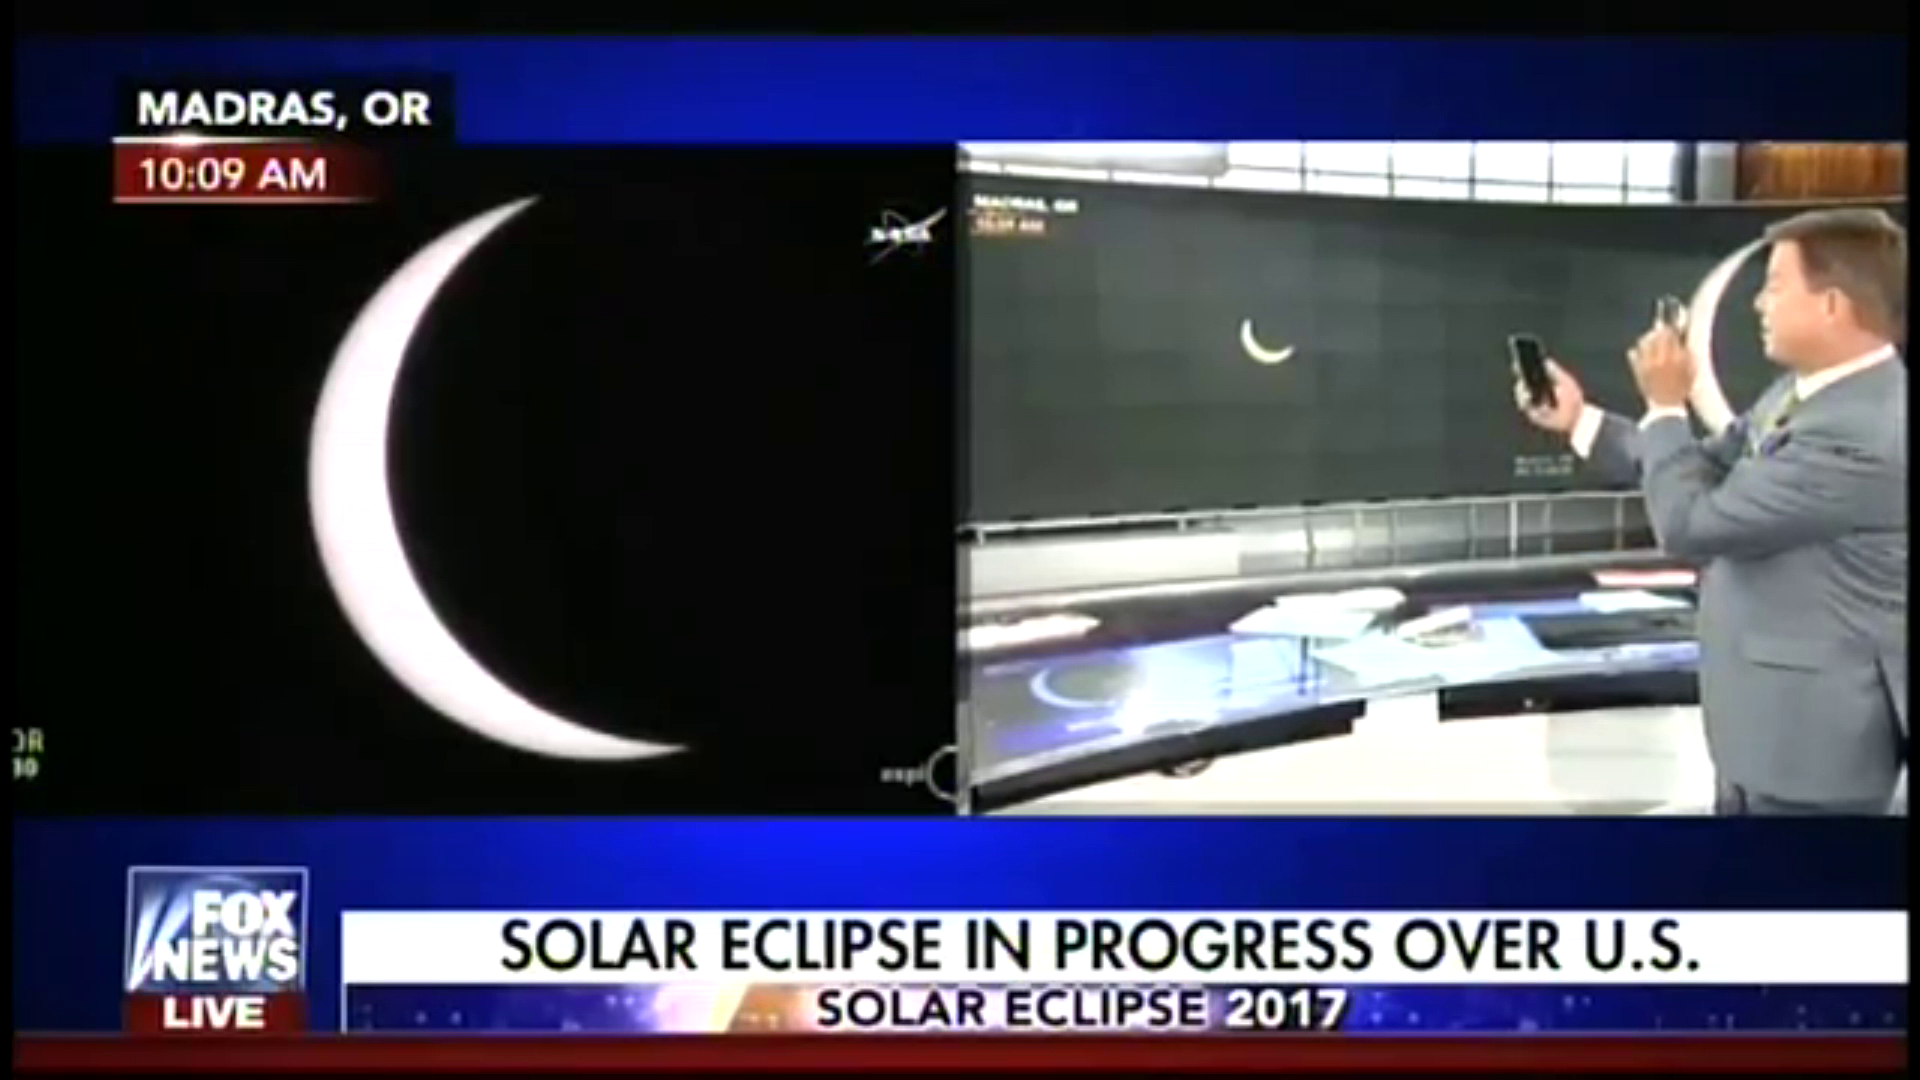 Eclipse science according to Fox News….